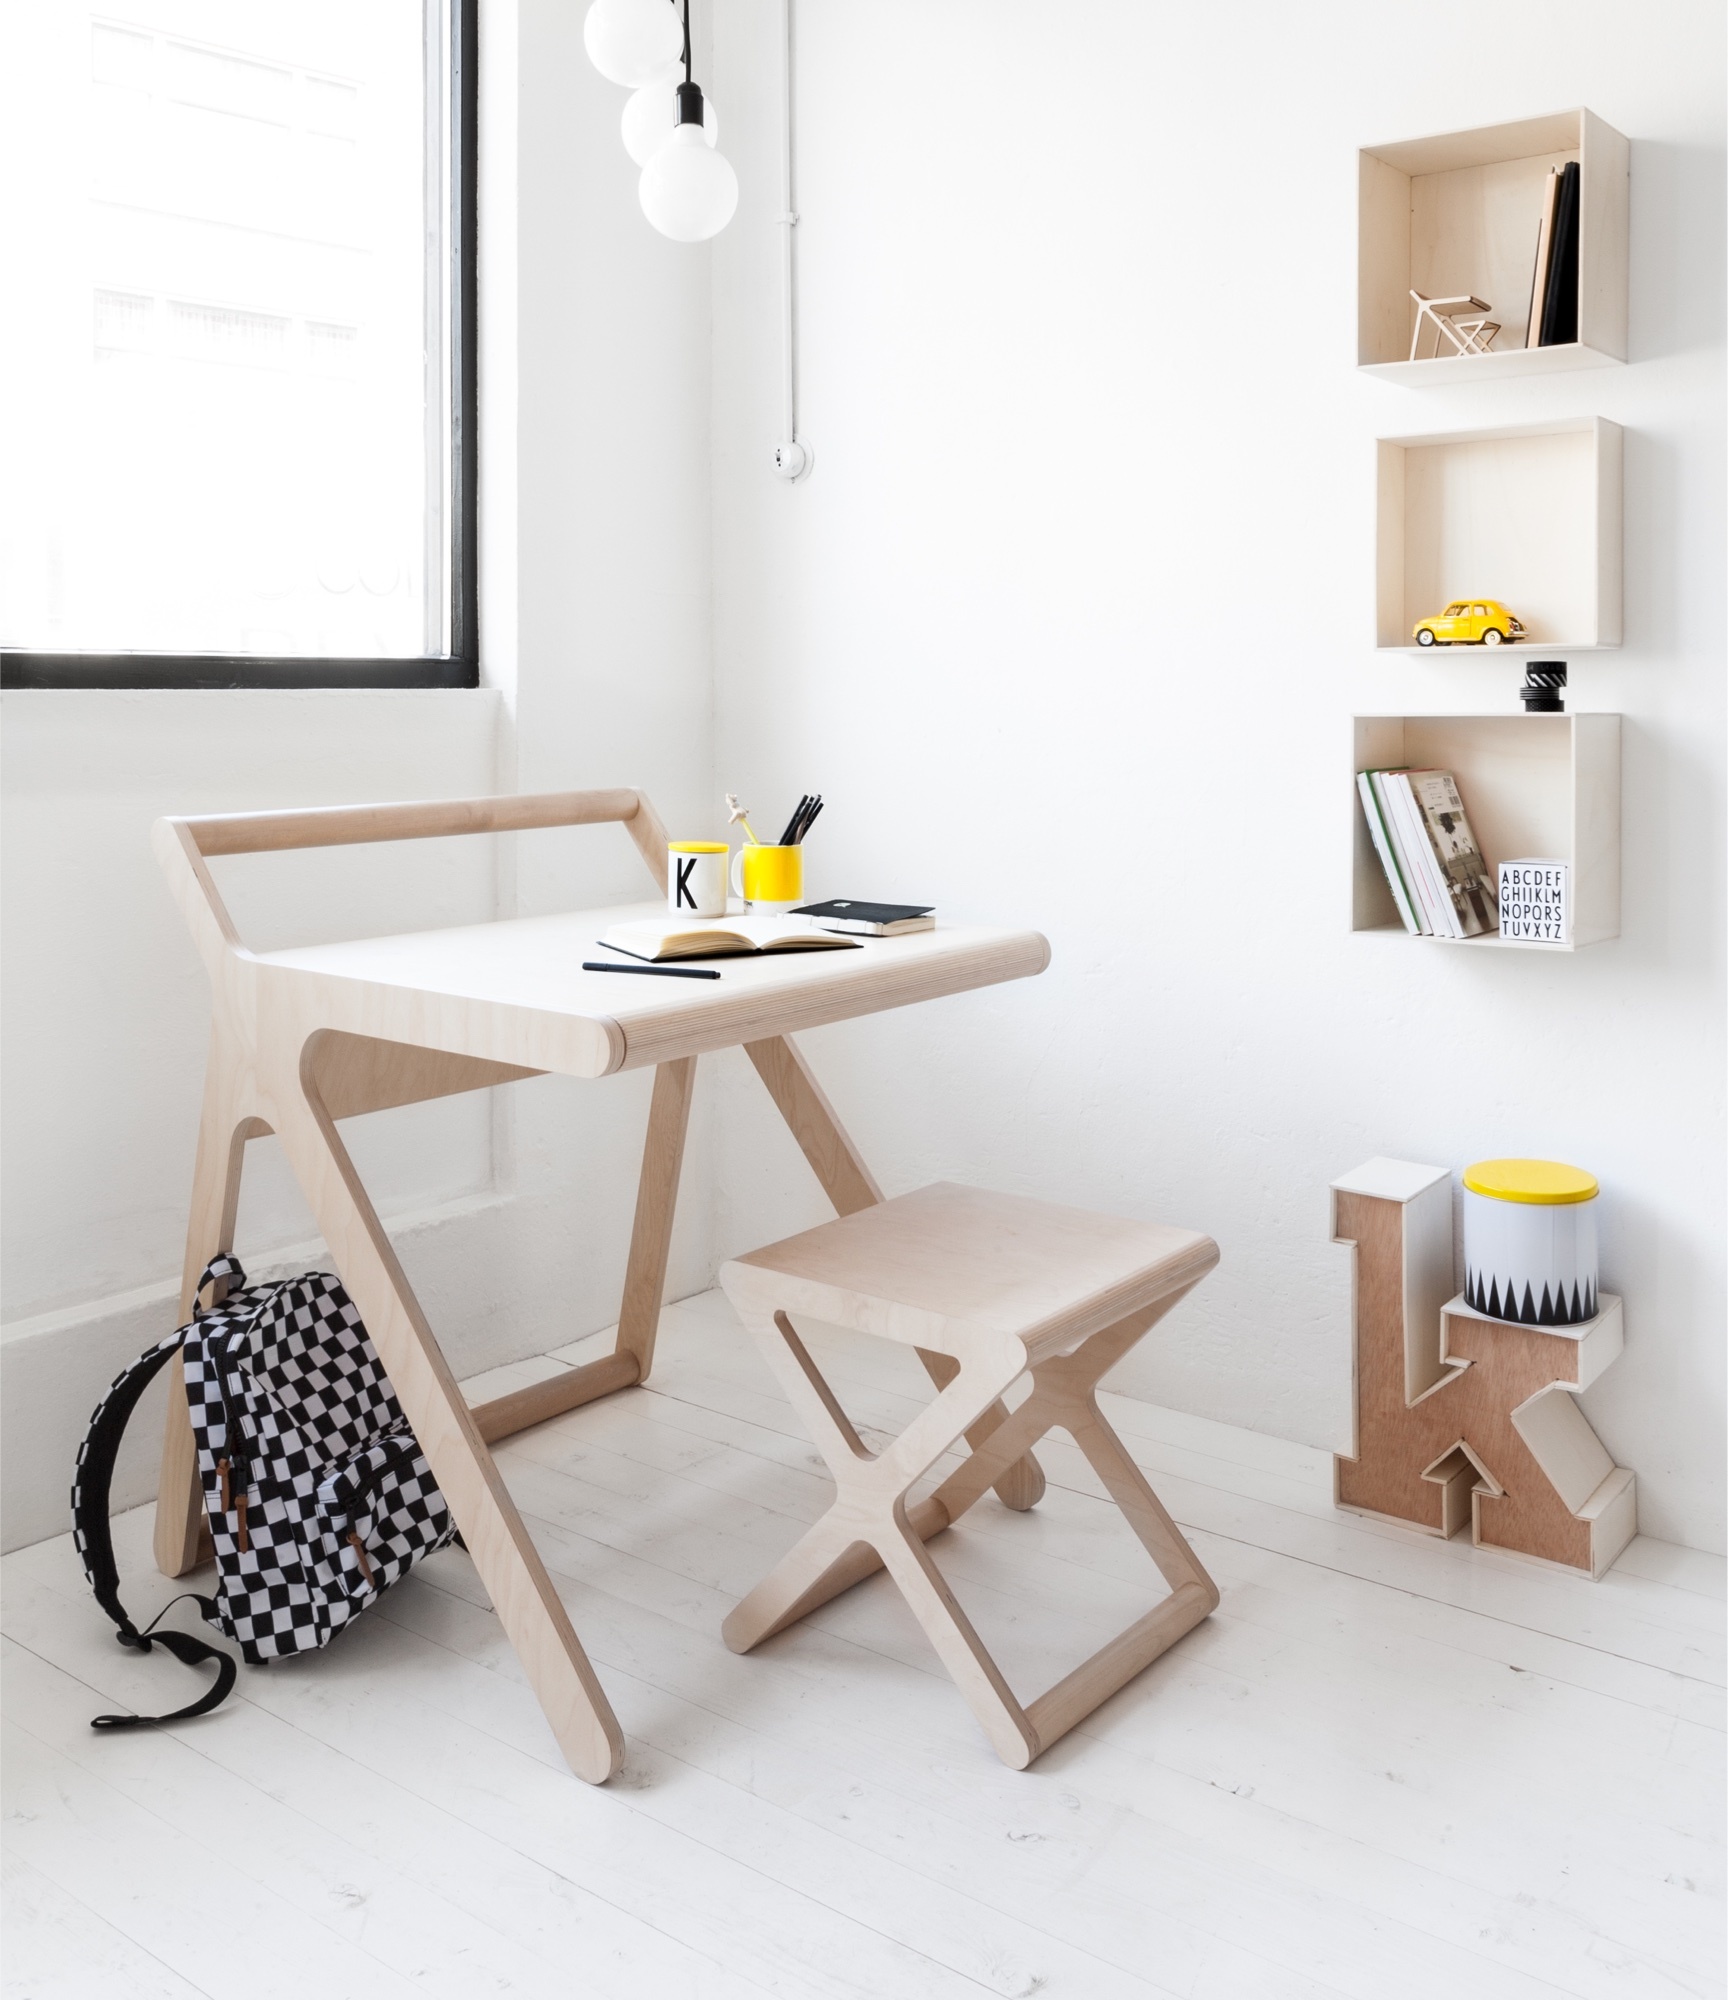 rafa kids k desk natural